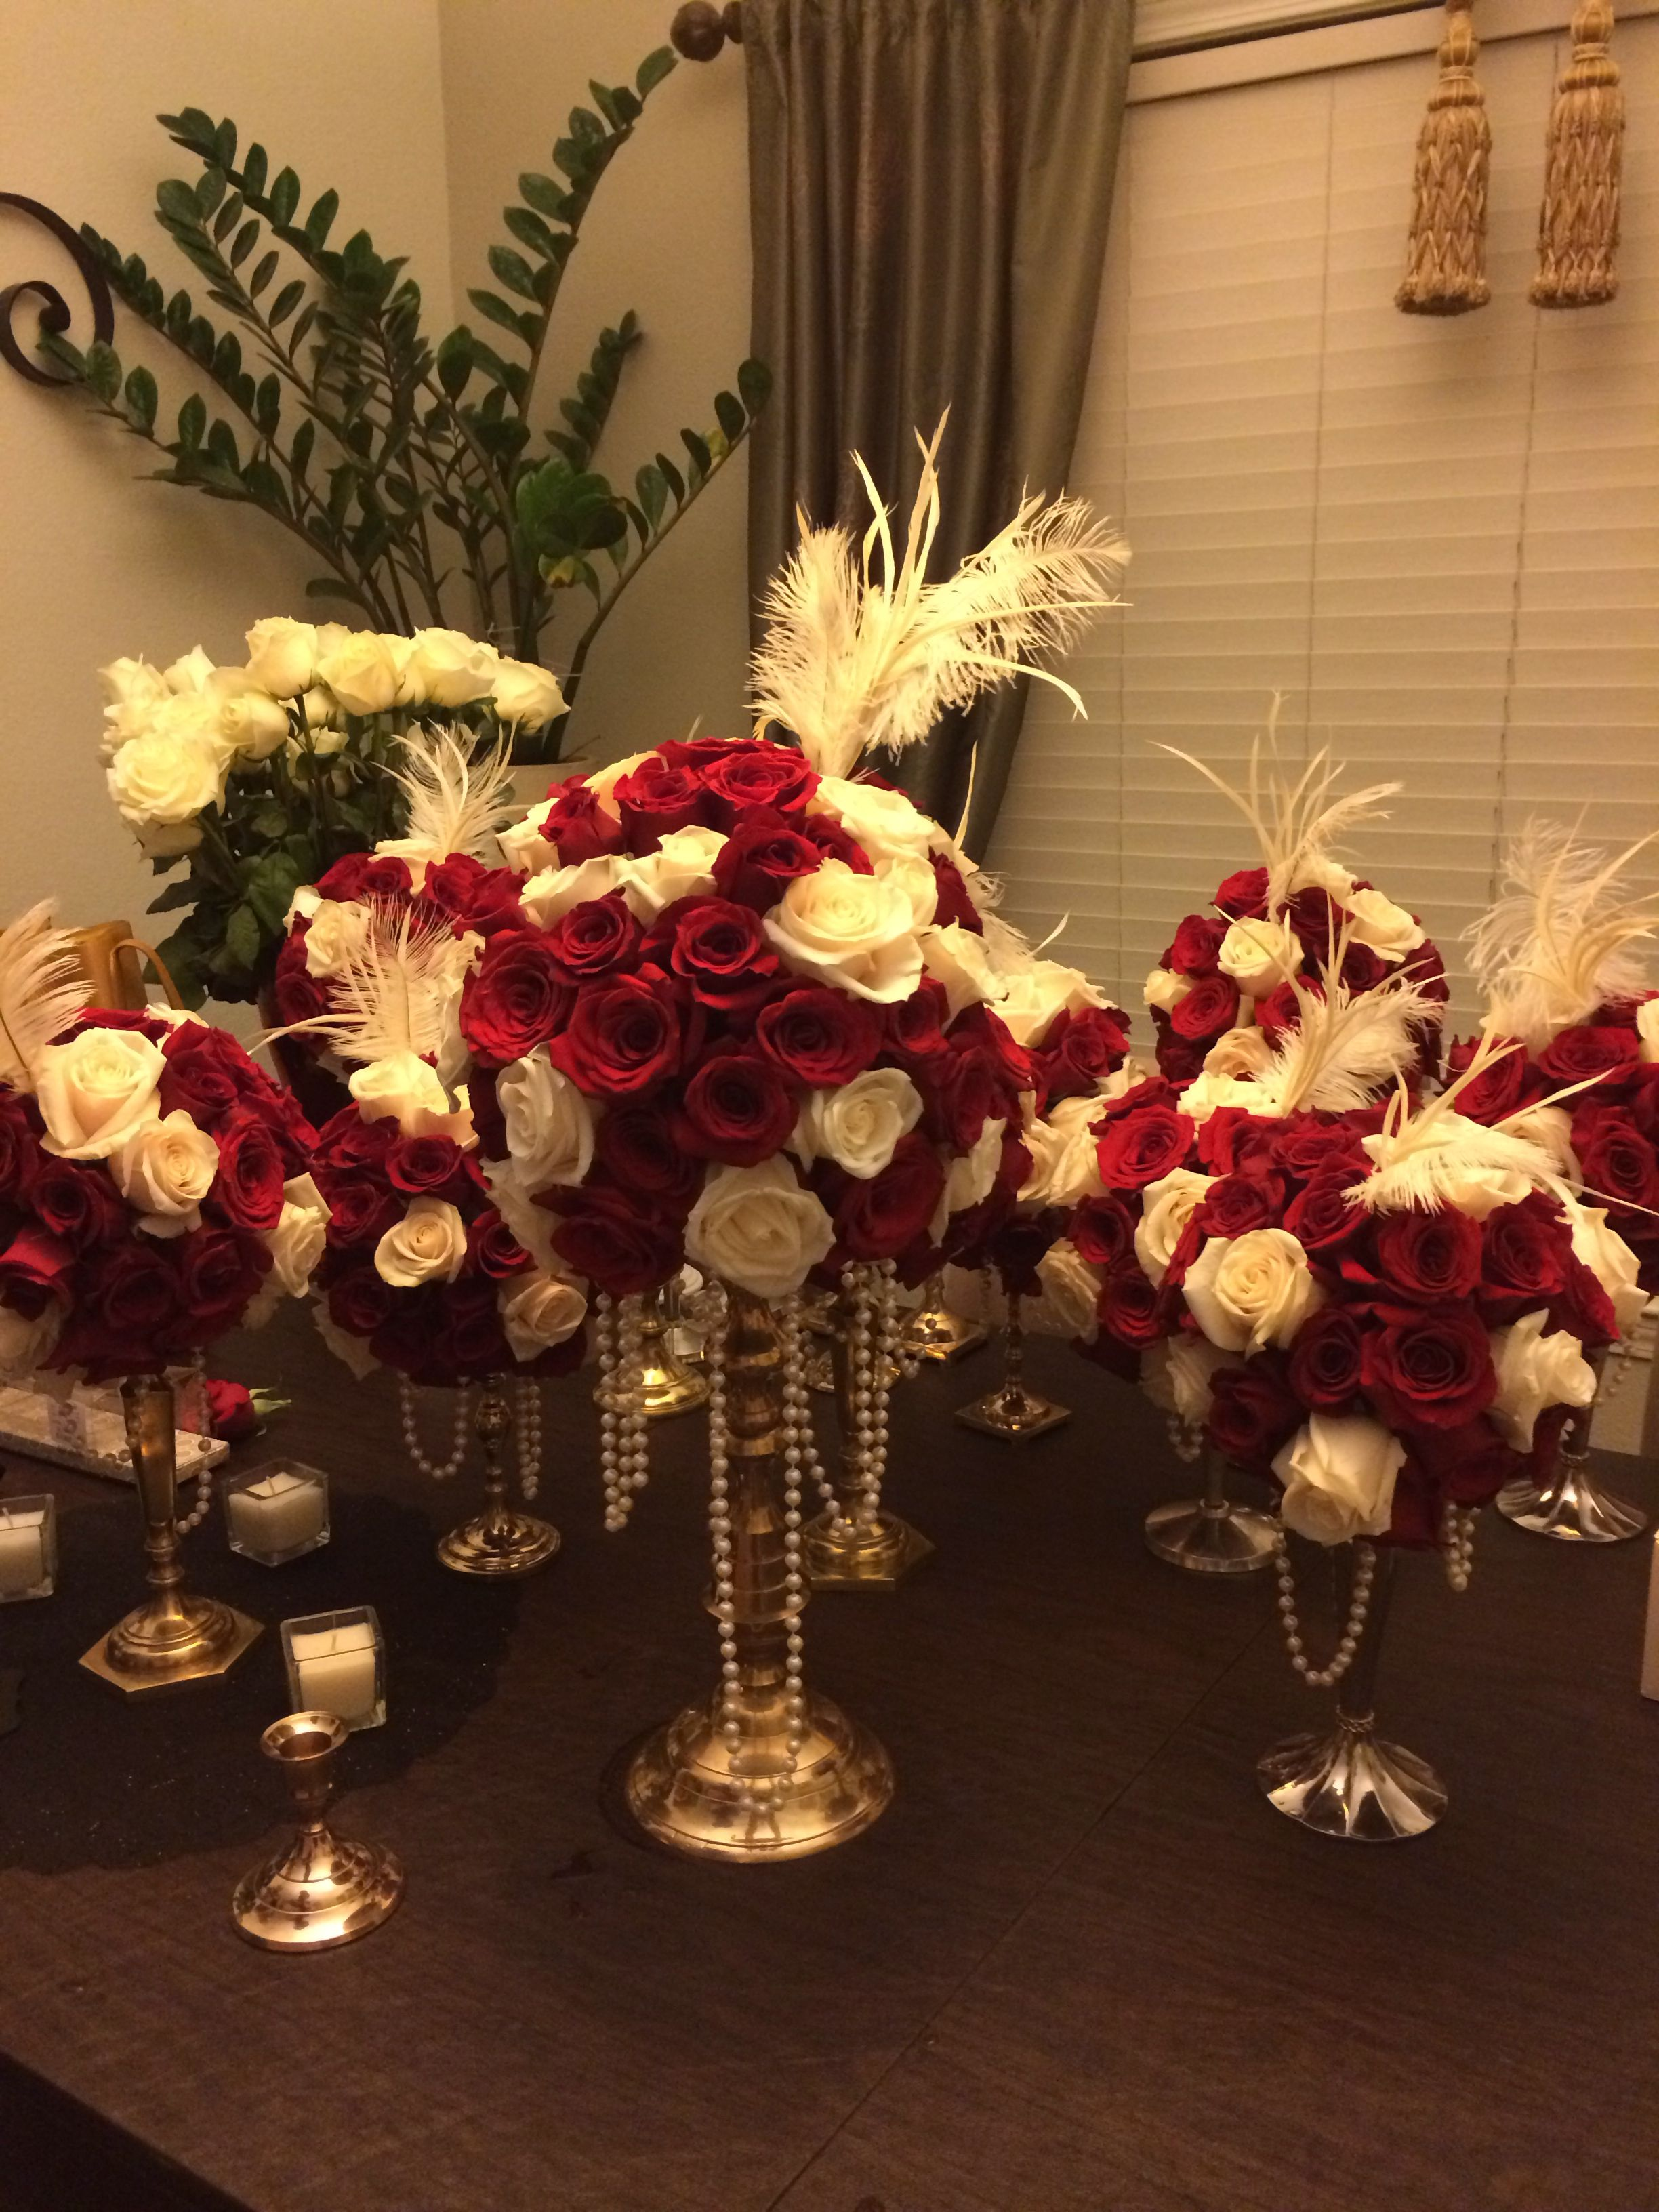 My diy great gatsby centerpieces craftsbycharm